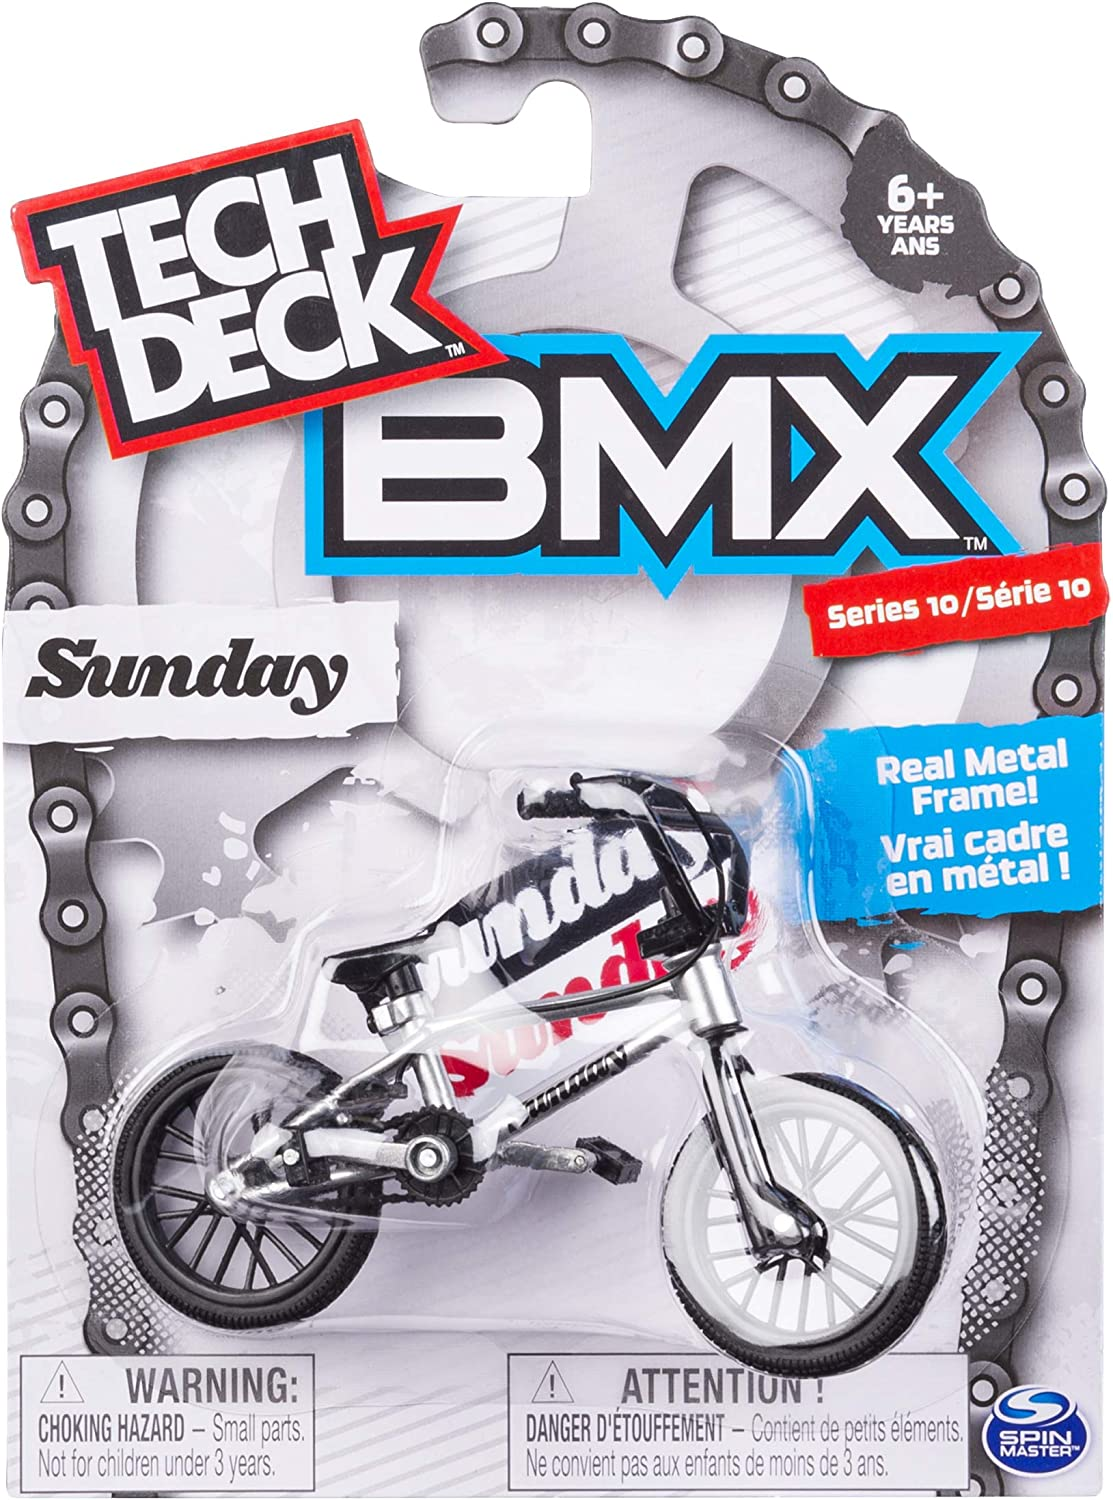 Tech Deck Bmx Finger Bike Sunday Blue Black Series 10 Skateboards Amazon Canada